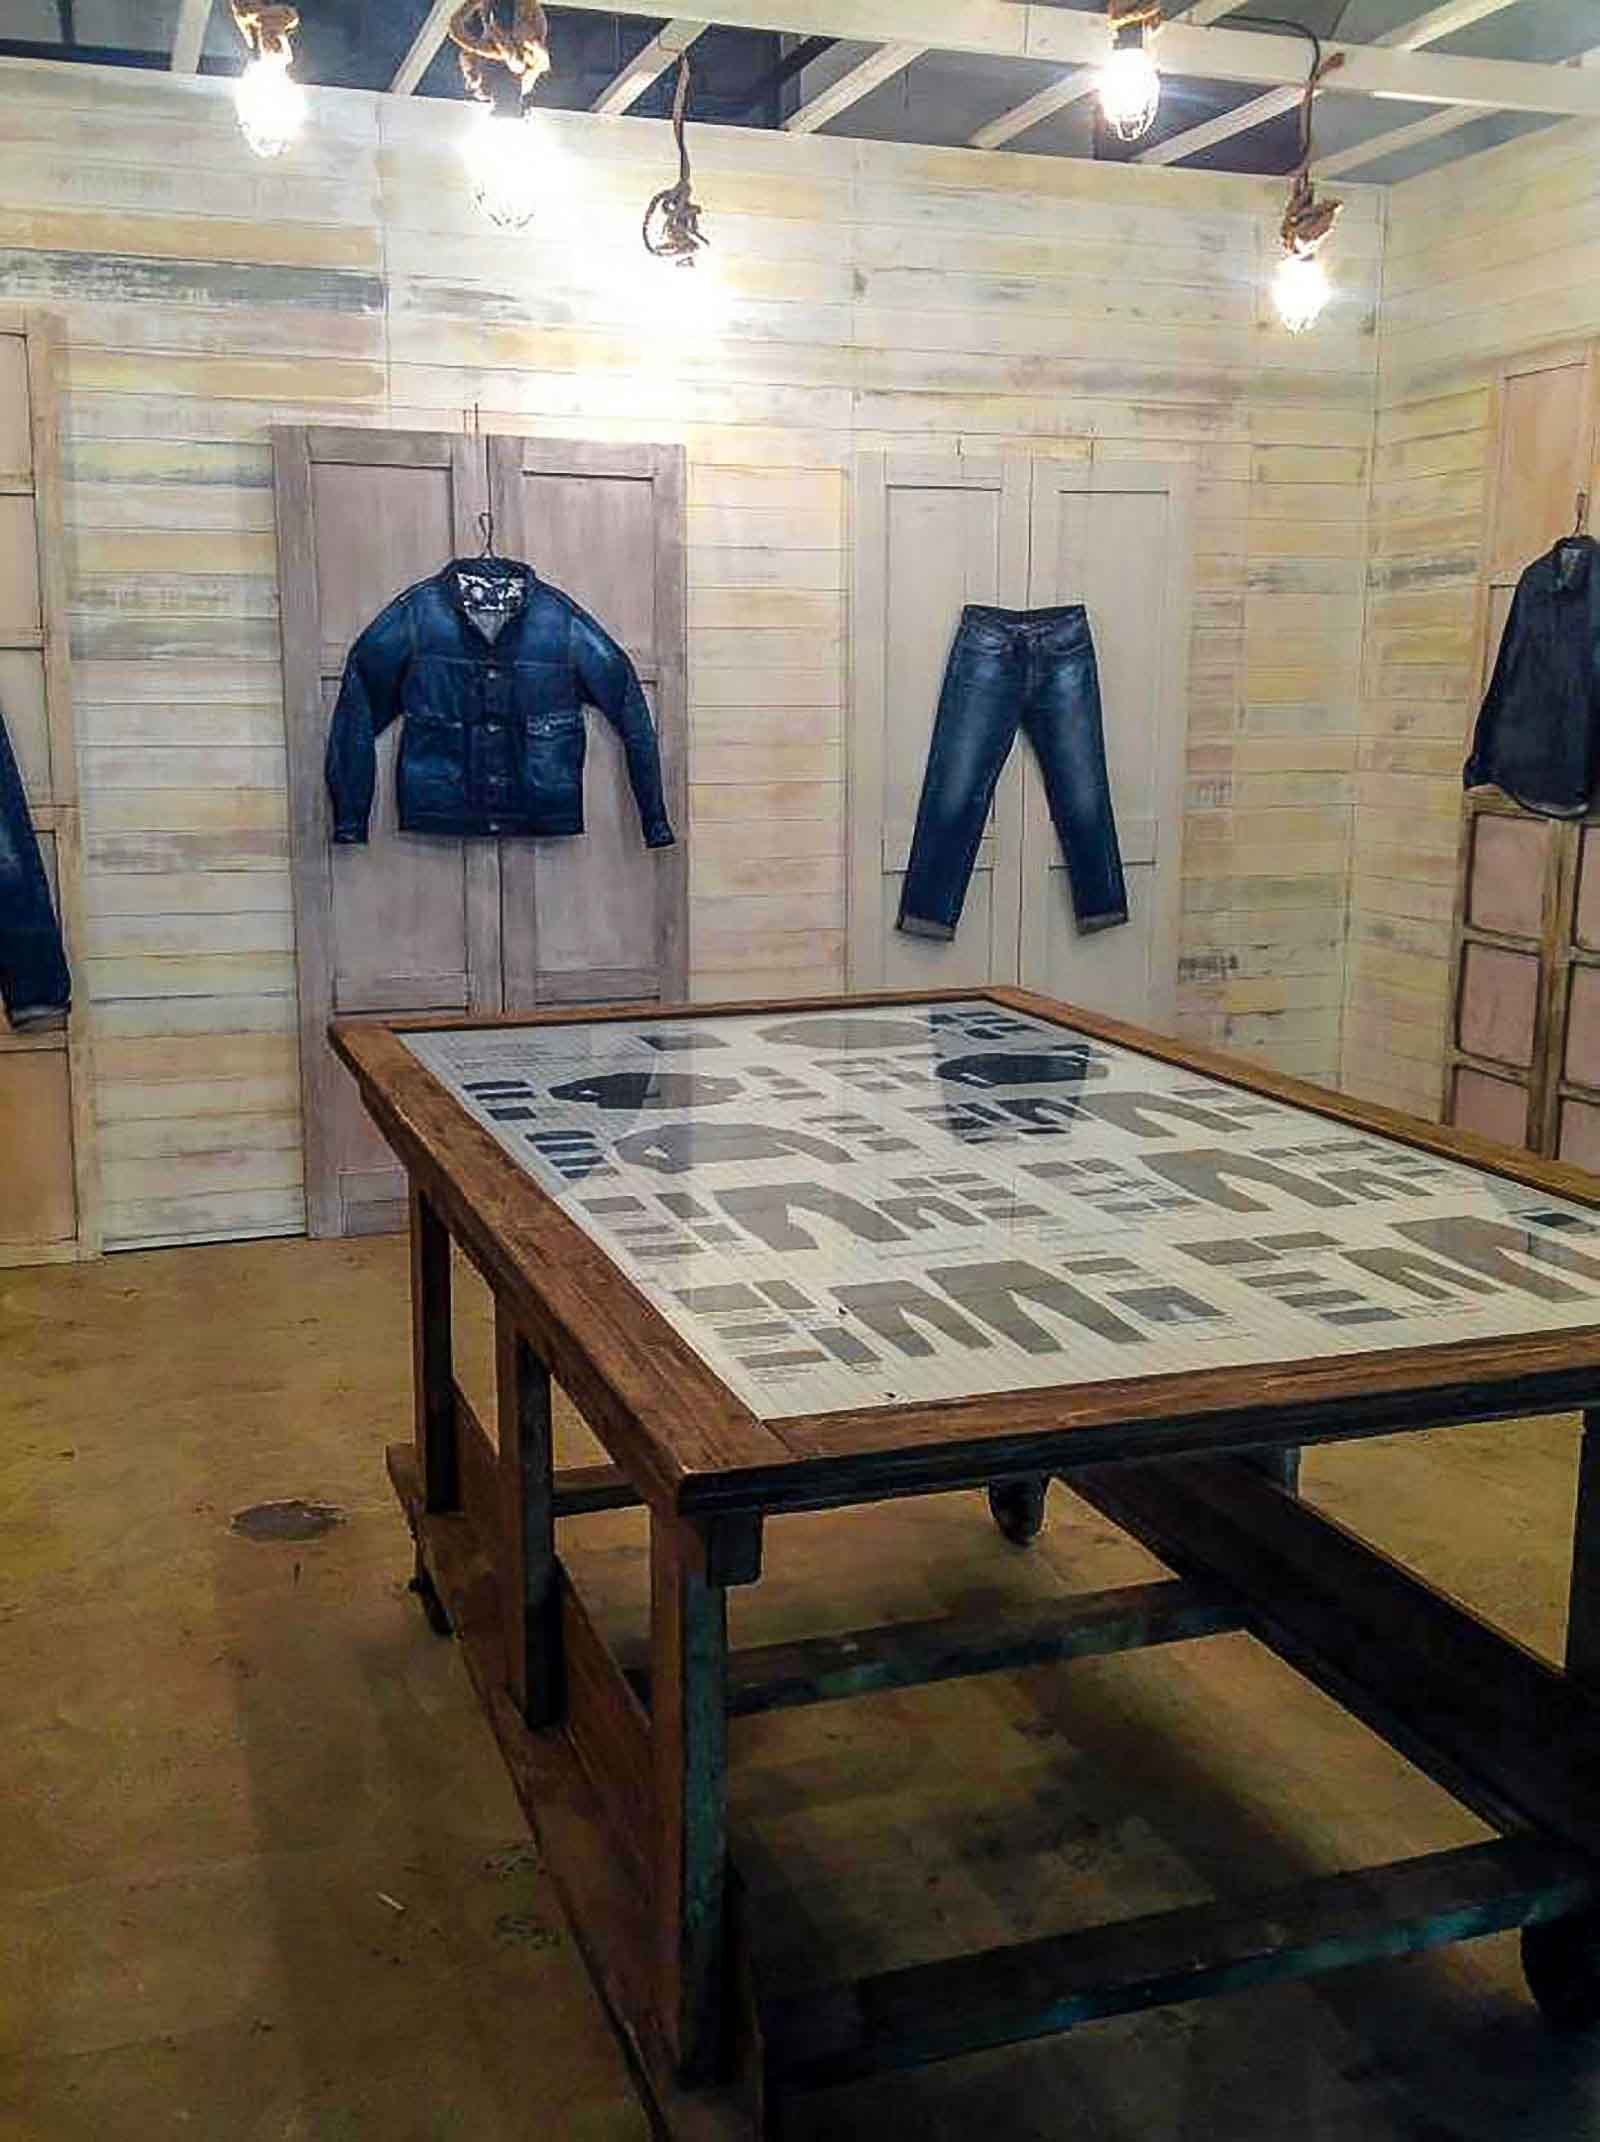 Denim by Premiere Vision Asia